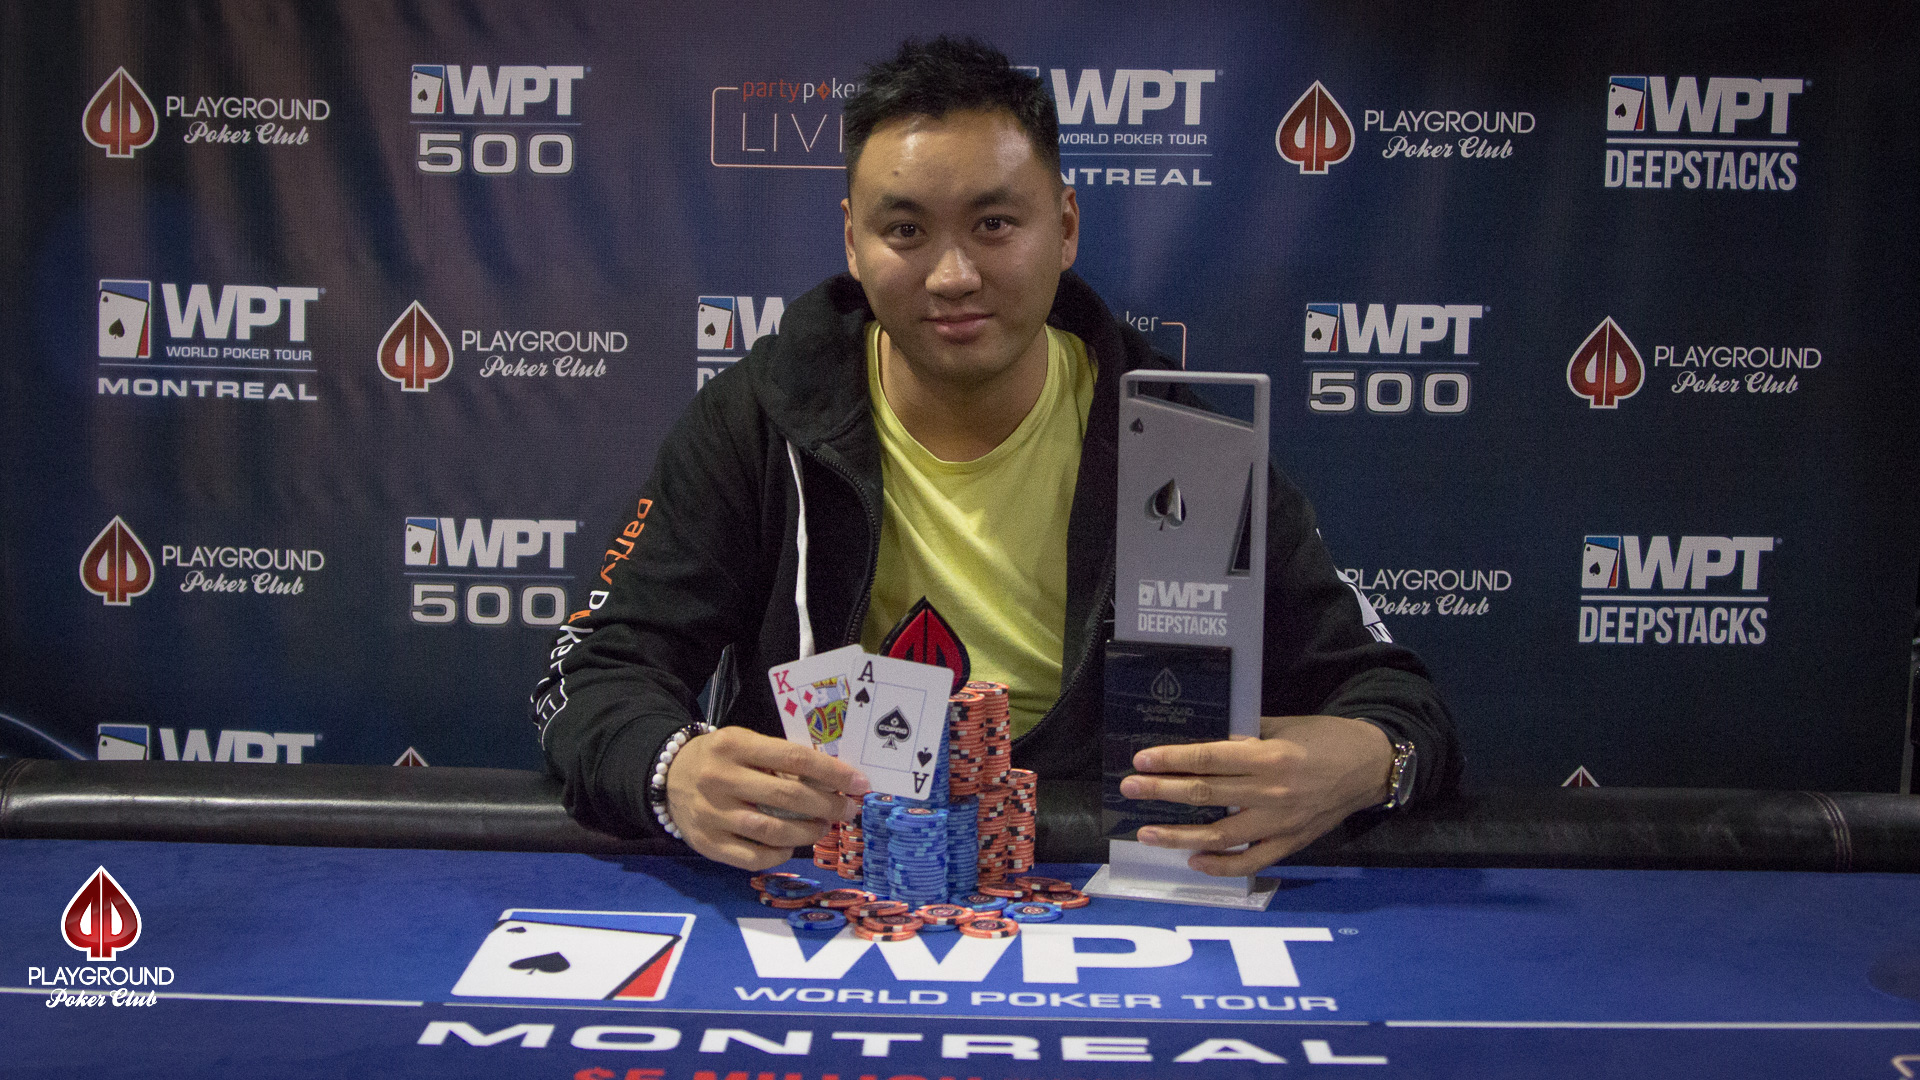 A WPTDeepStacks Champion has been crowned!